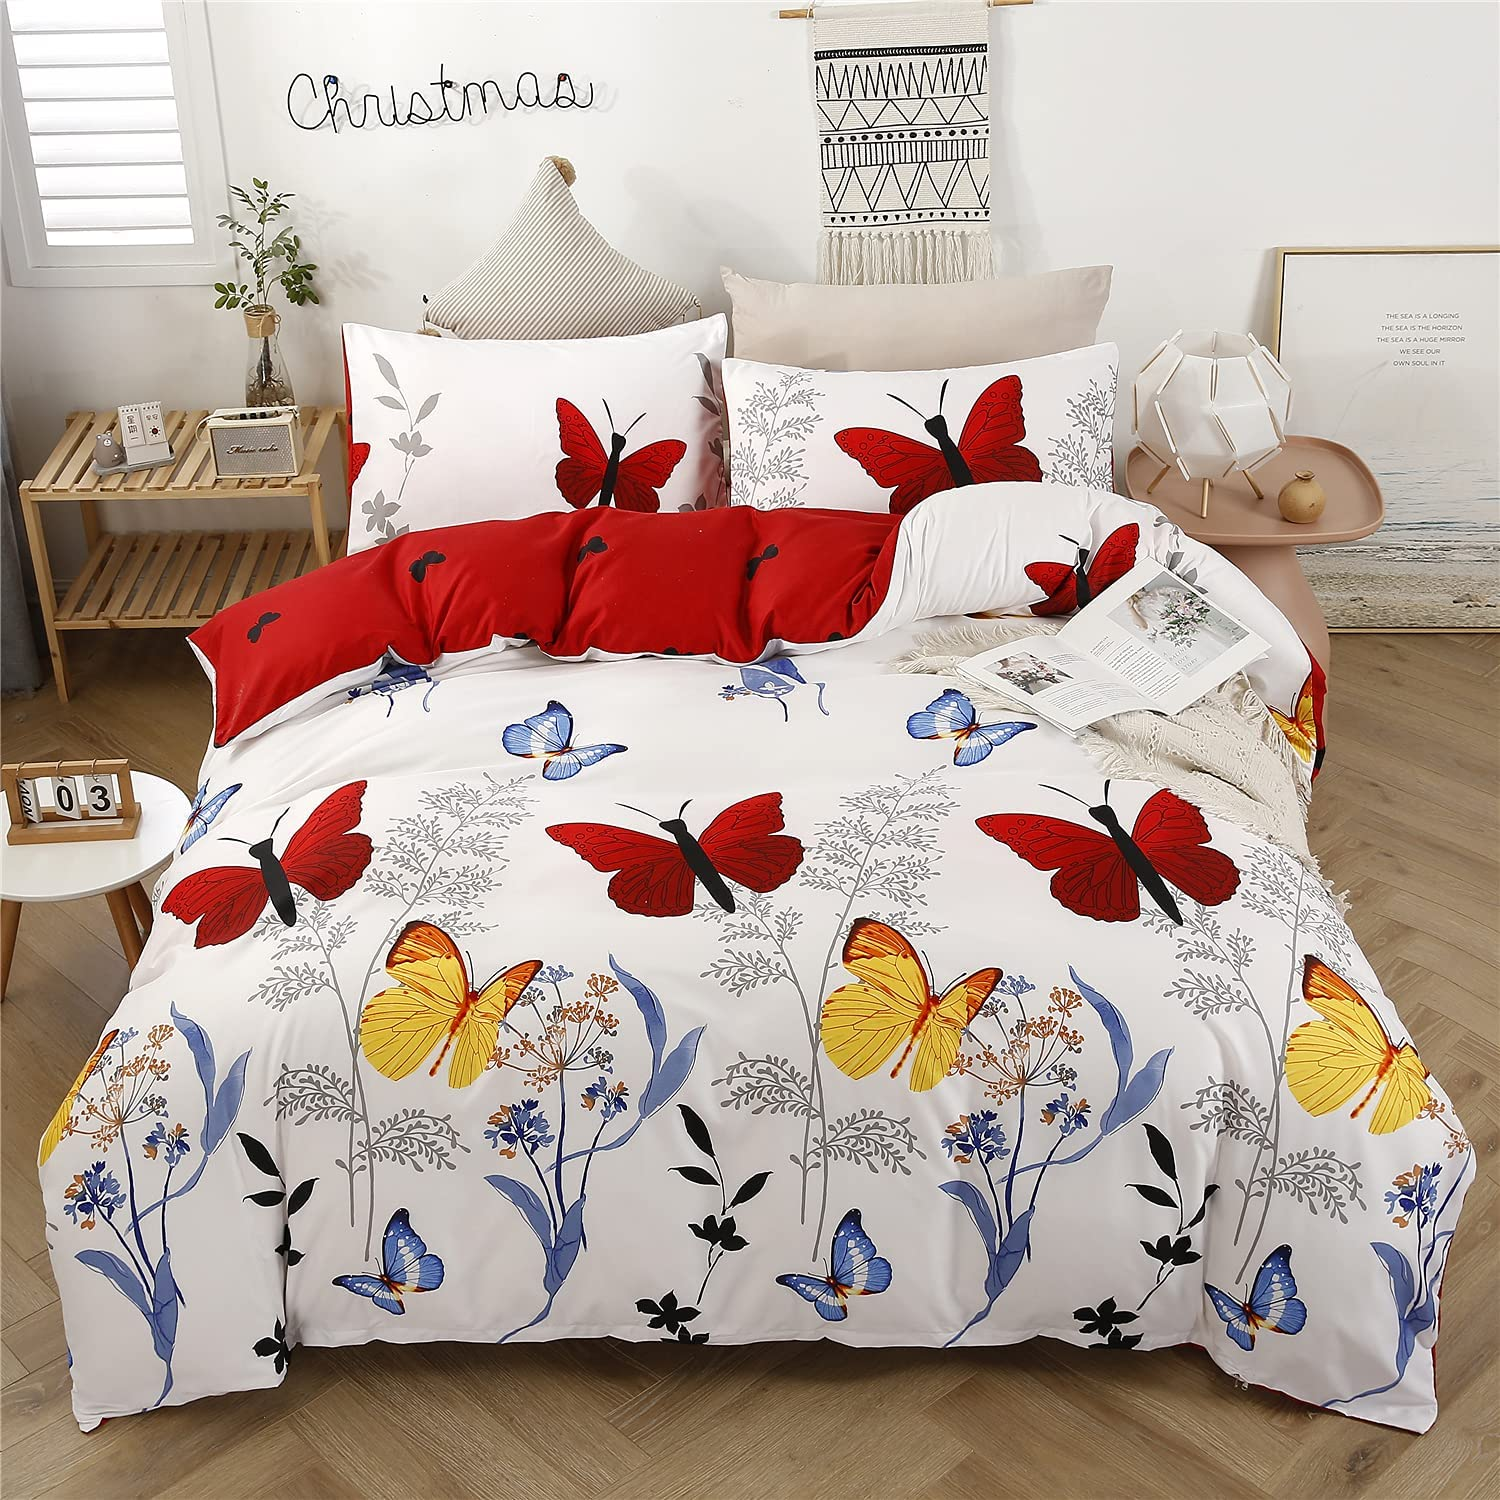 Super sale WINLIFE Colorful Butterfly Printed on Branches Duv New life White Bedding